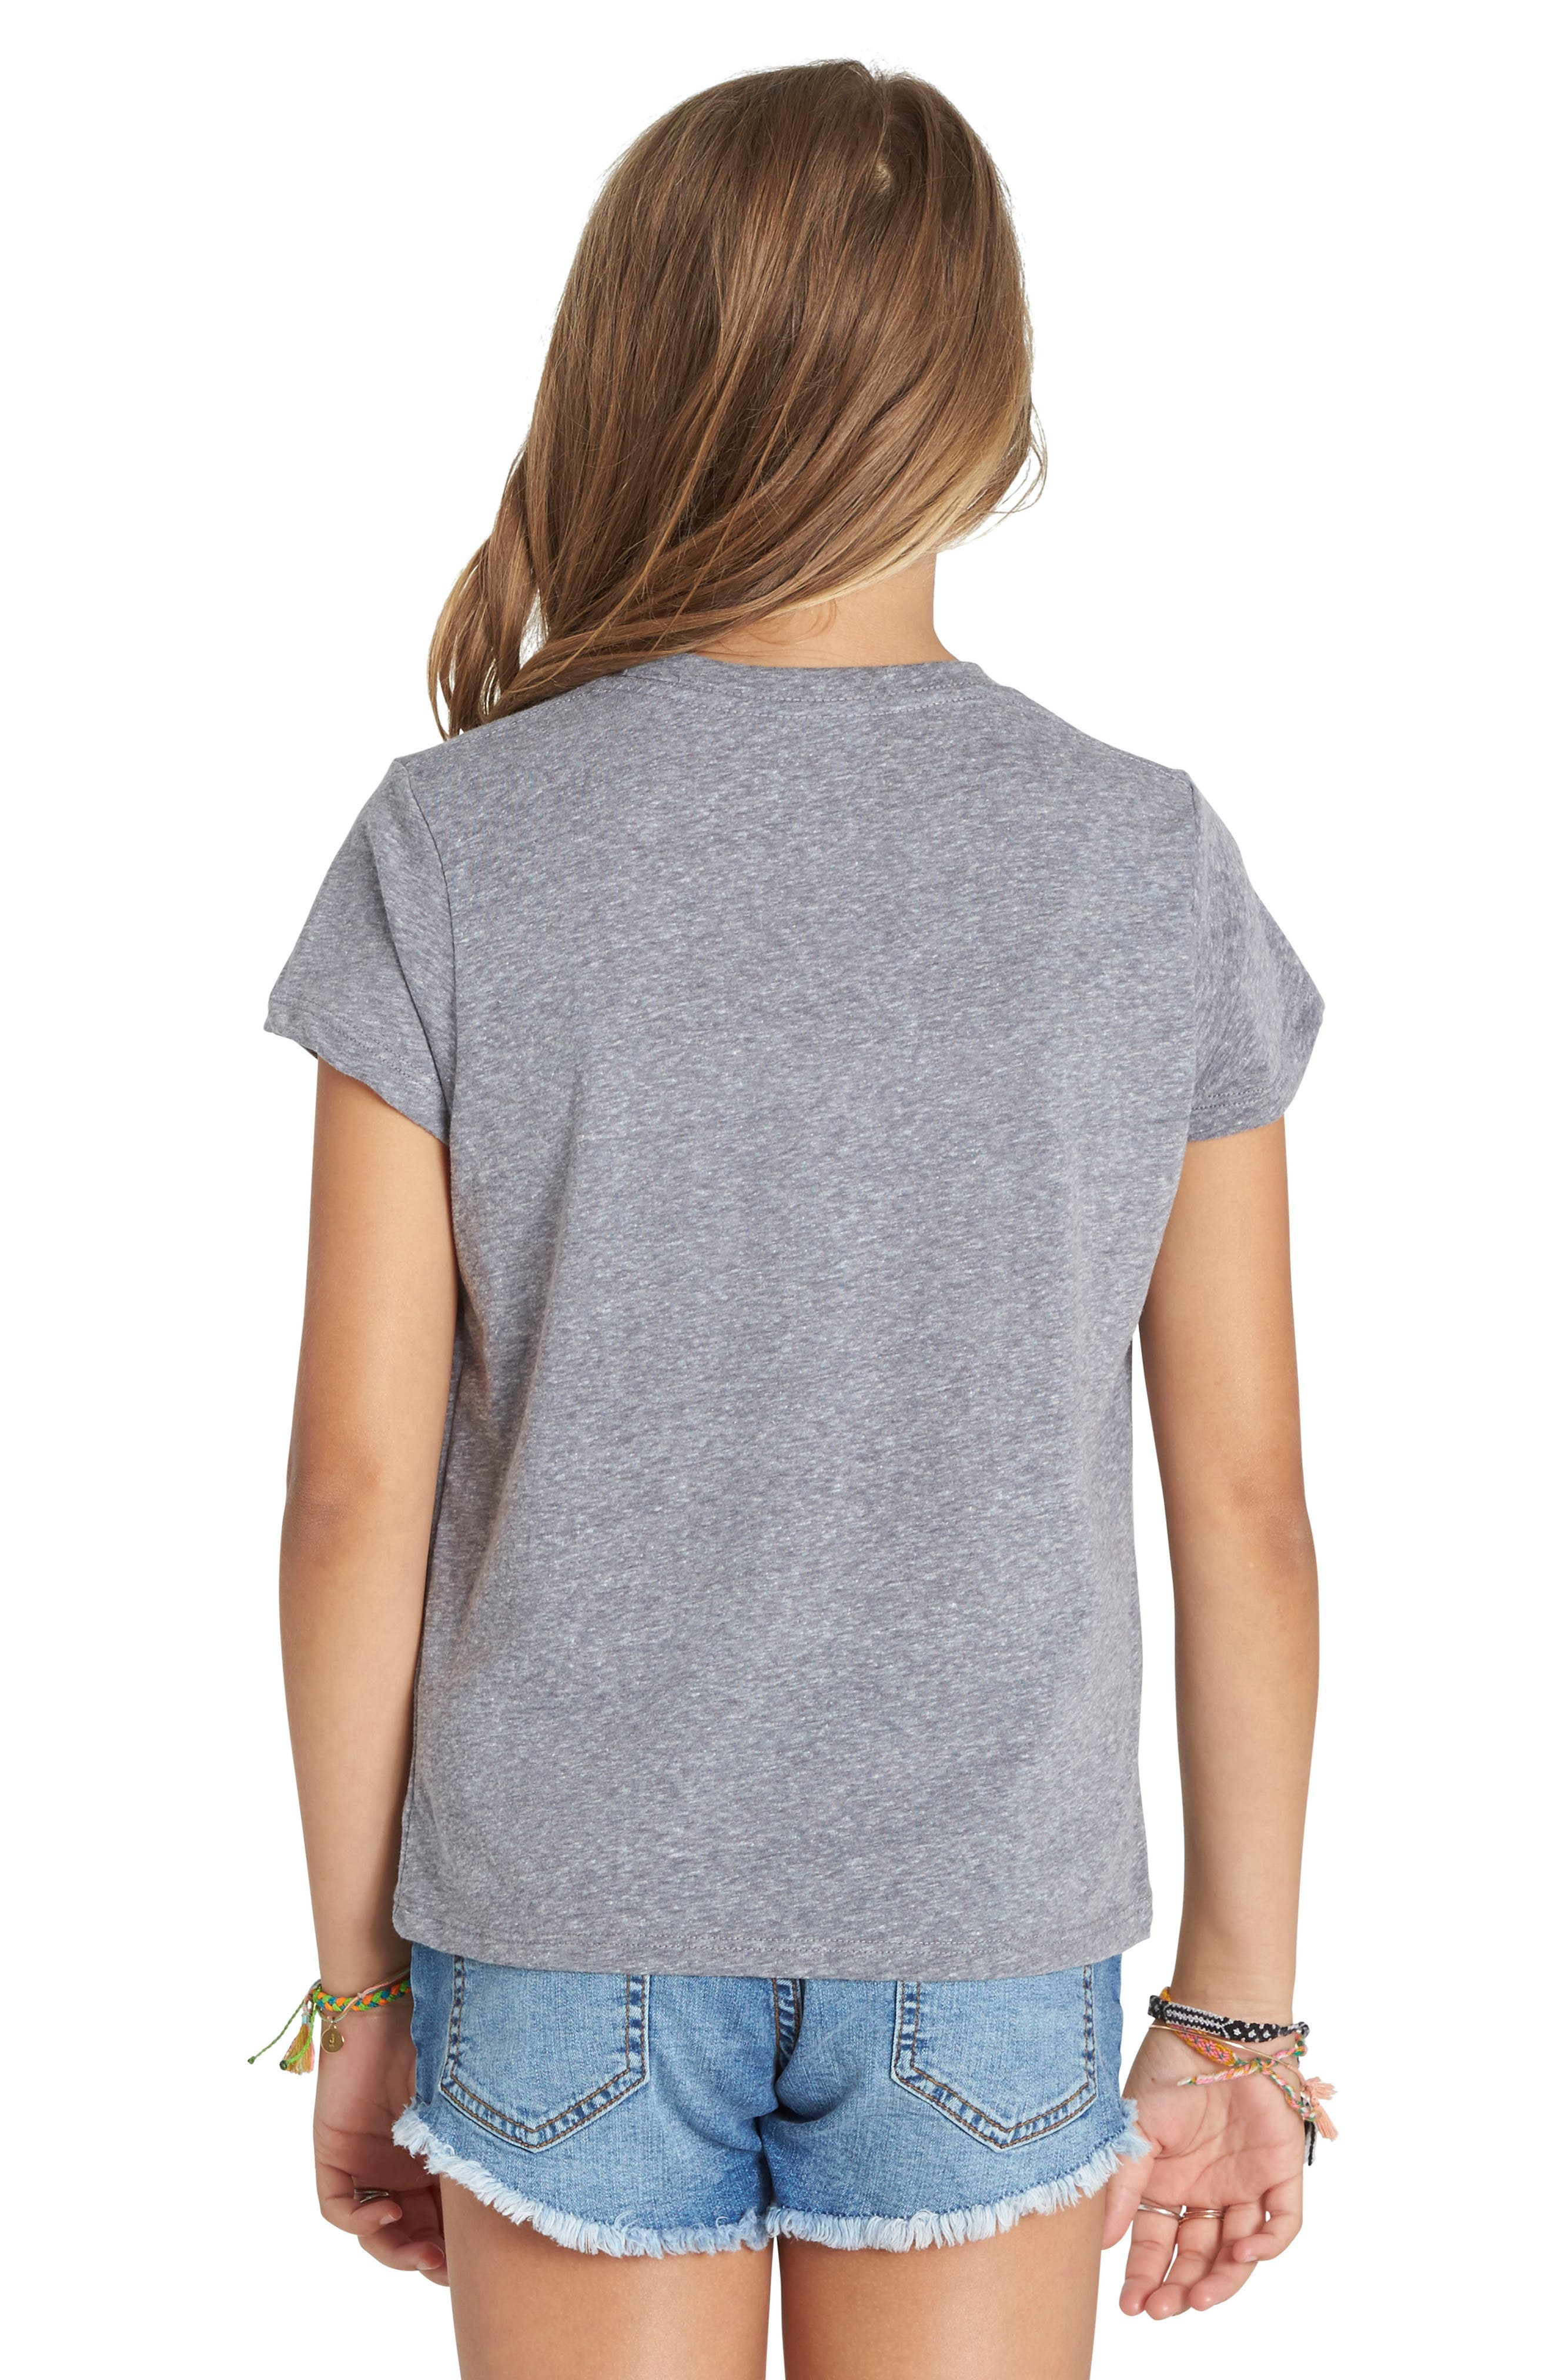 Little Owl Graphic Tee,                             Alternate thumbnail 2, color,                             Dark Athletic Grey